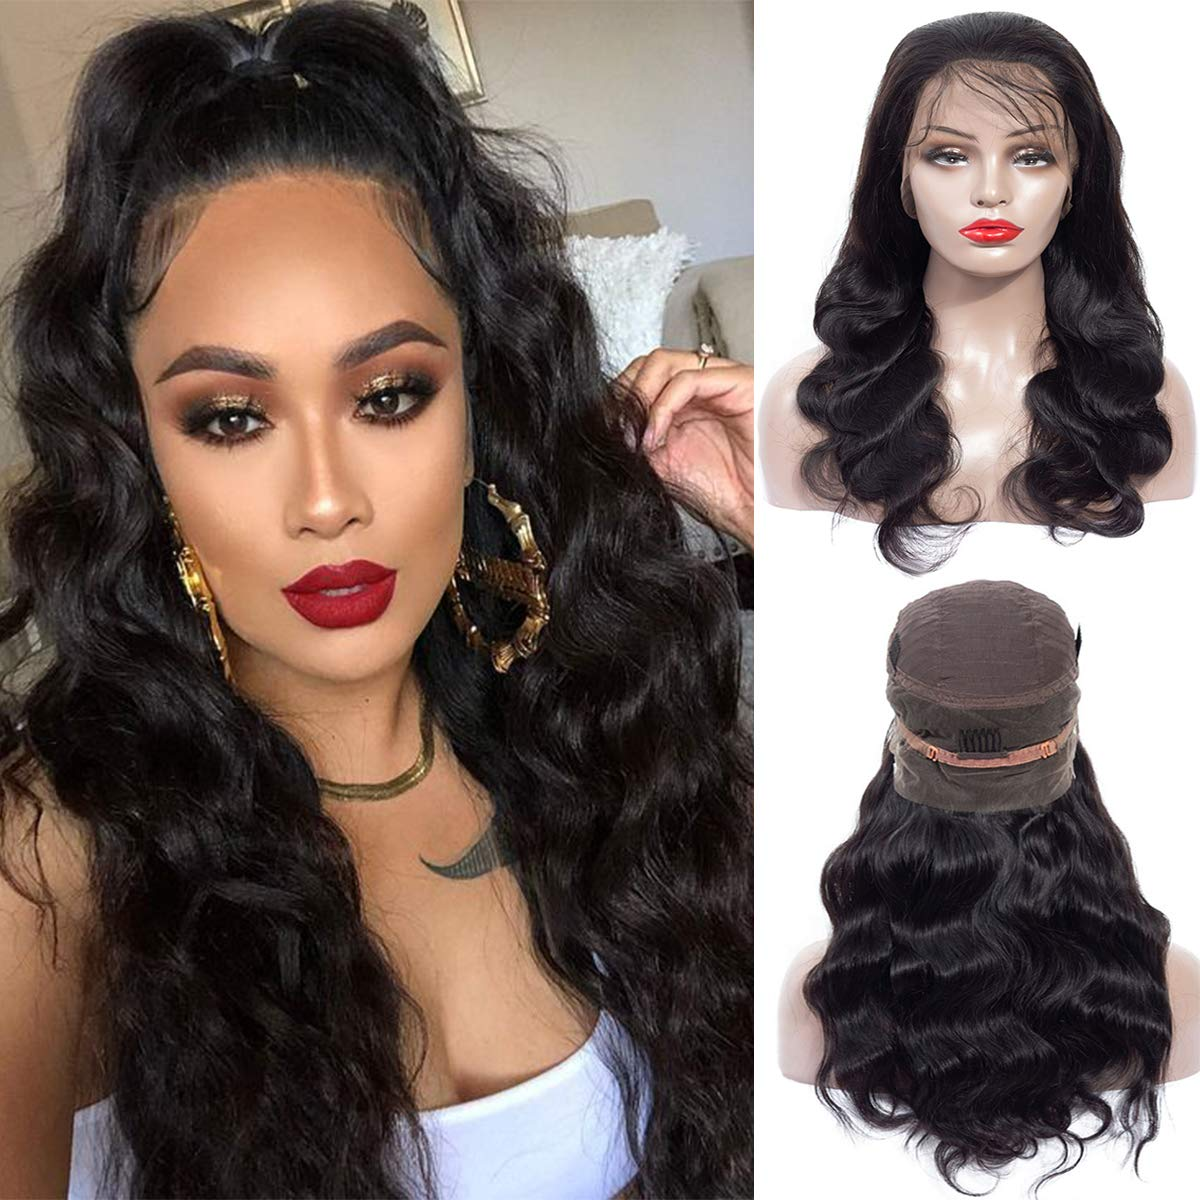 Human Hair 360 Lace Frontal Wigs 14 Inch Brazilian Virgin Lace Front Wigs Human Hair Pre Plucked With Baby Hair For Black Women Natural Black Color(14 inch, 150% Density) by shangzhixiu (Image #1)